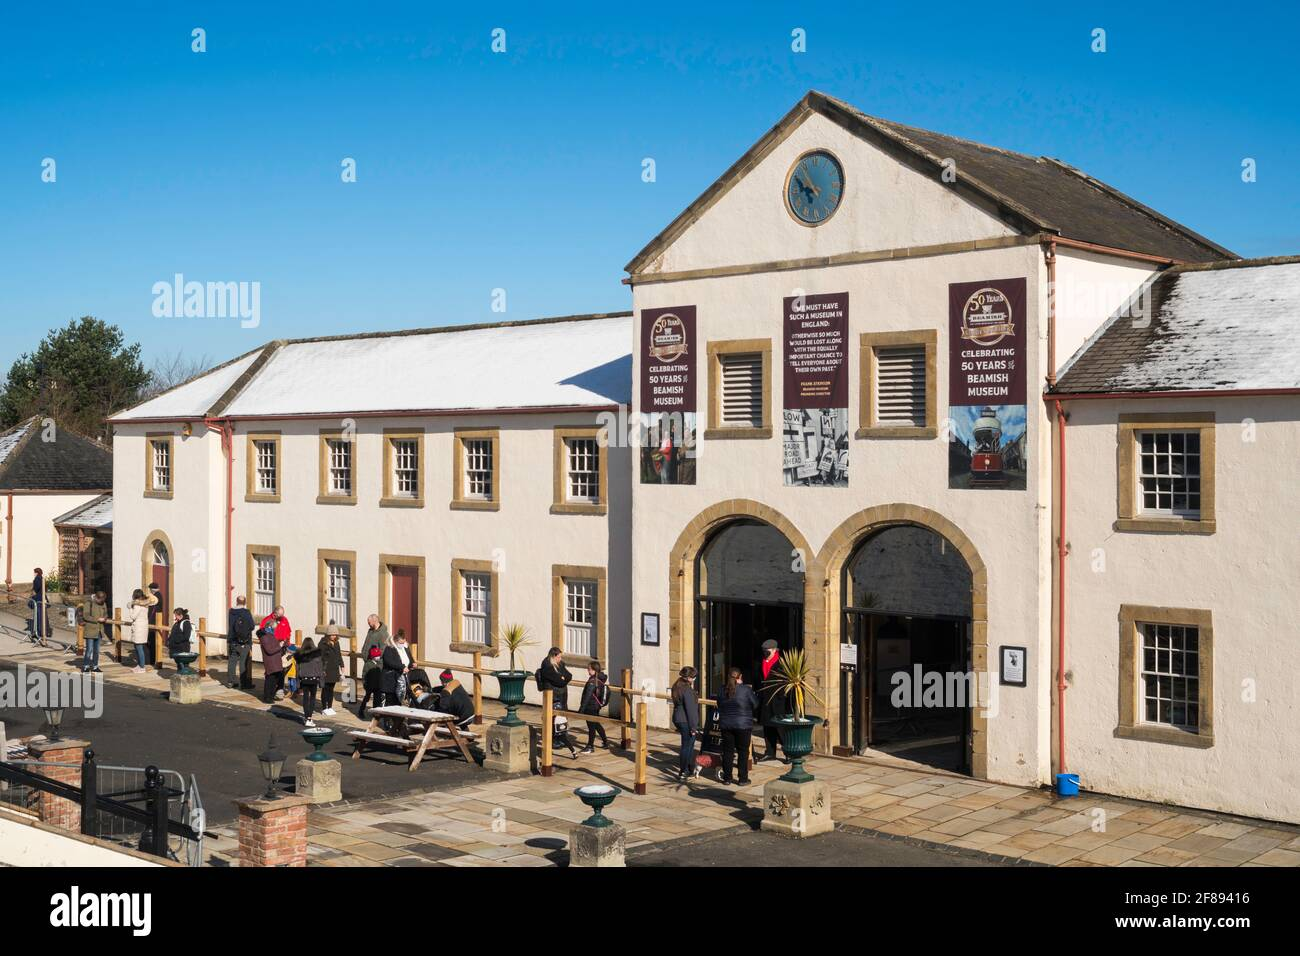 Beamish, Co. Durham UK 12-04-2021 Reopening of Beamish Museum at the end of Covid lockdown on the morning of Monday 12th April 2021. Pictured, the first visitors queuing to enter. (C)  Washington Imaging/Alamy Stock Photo